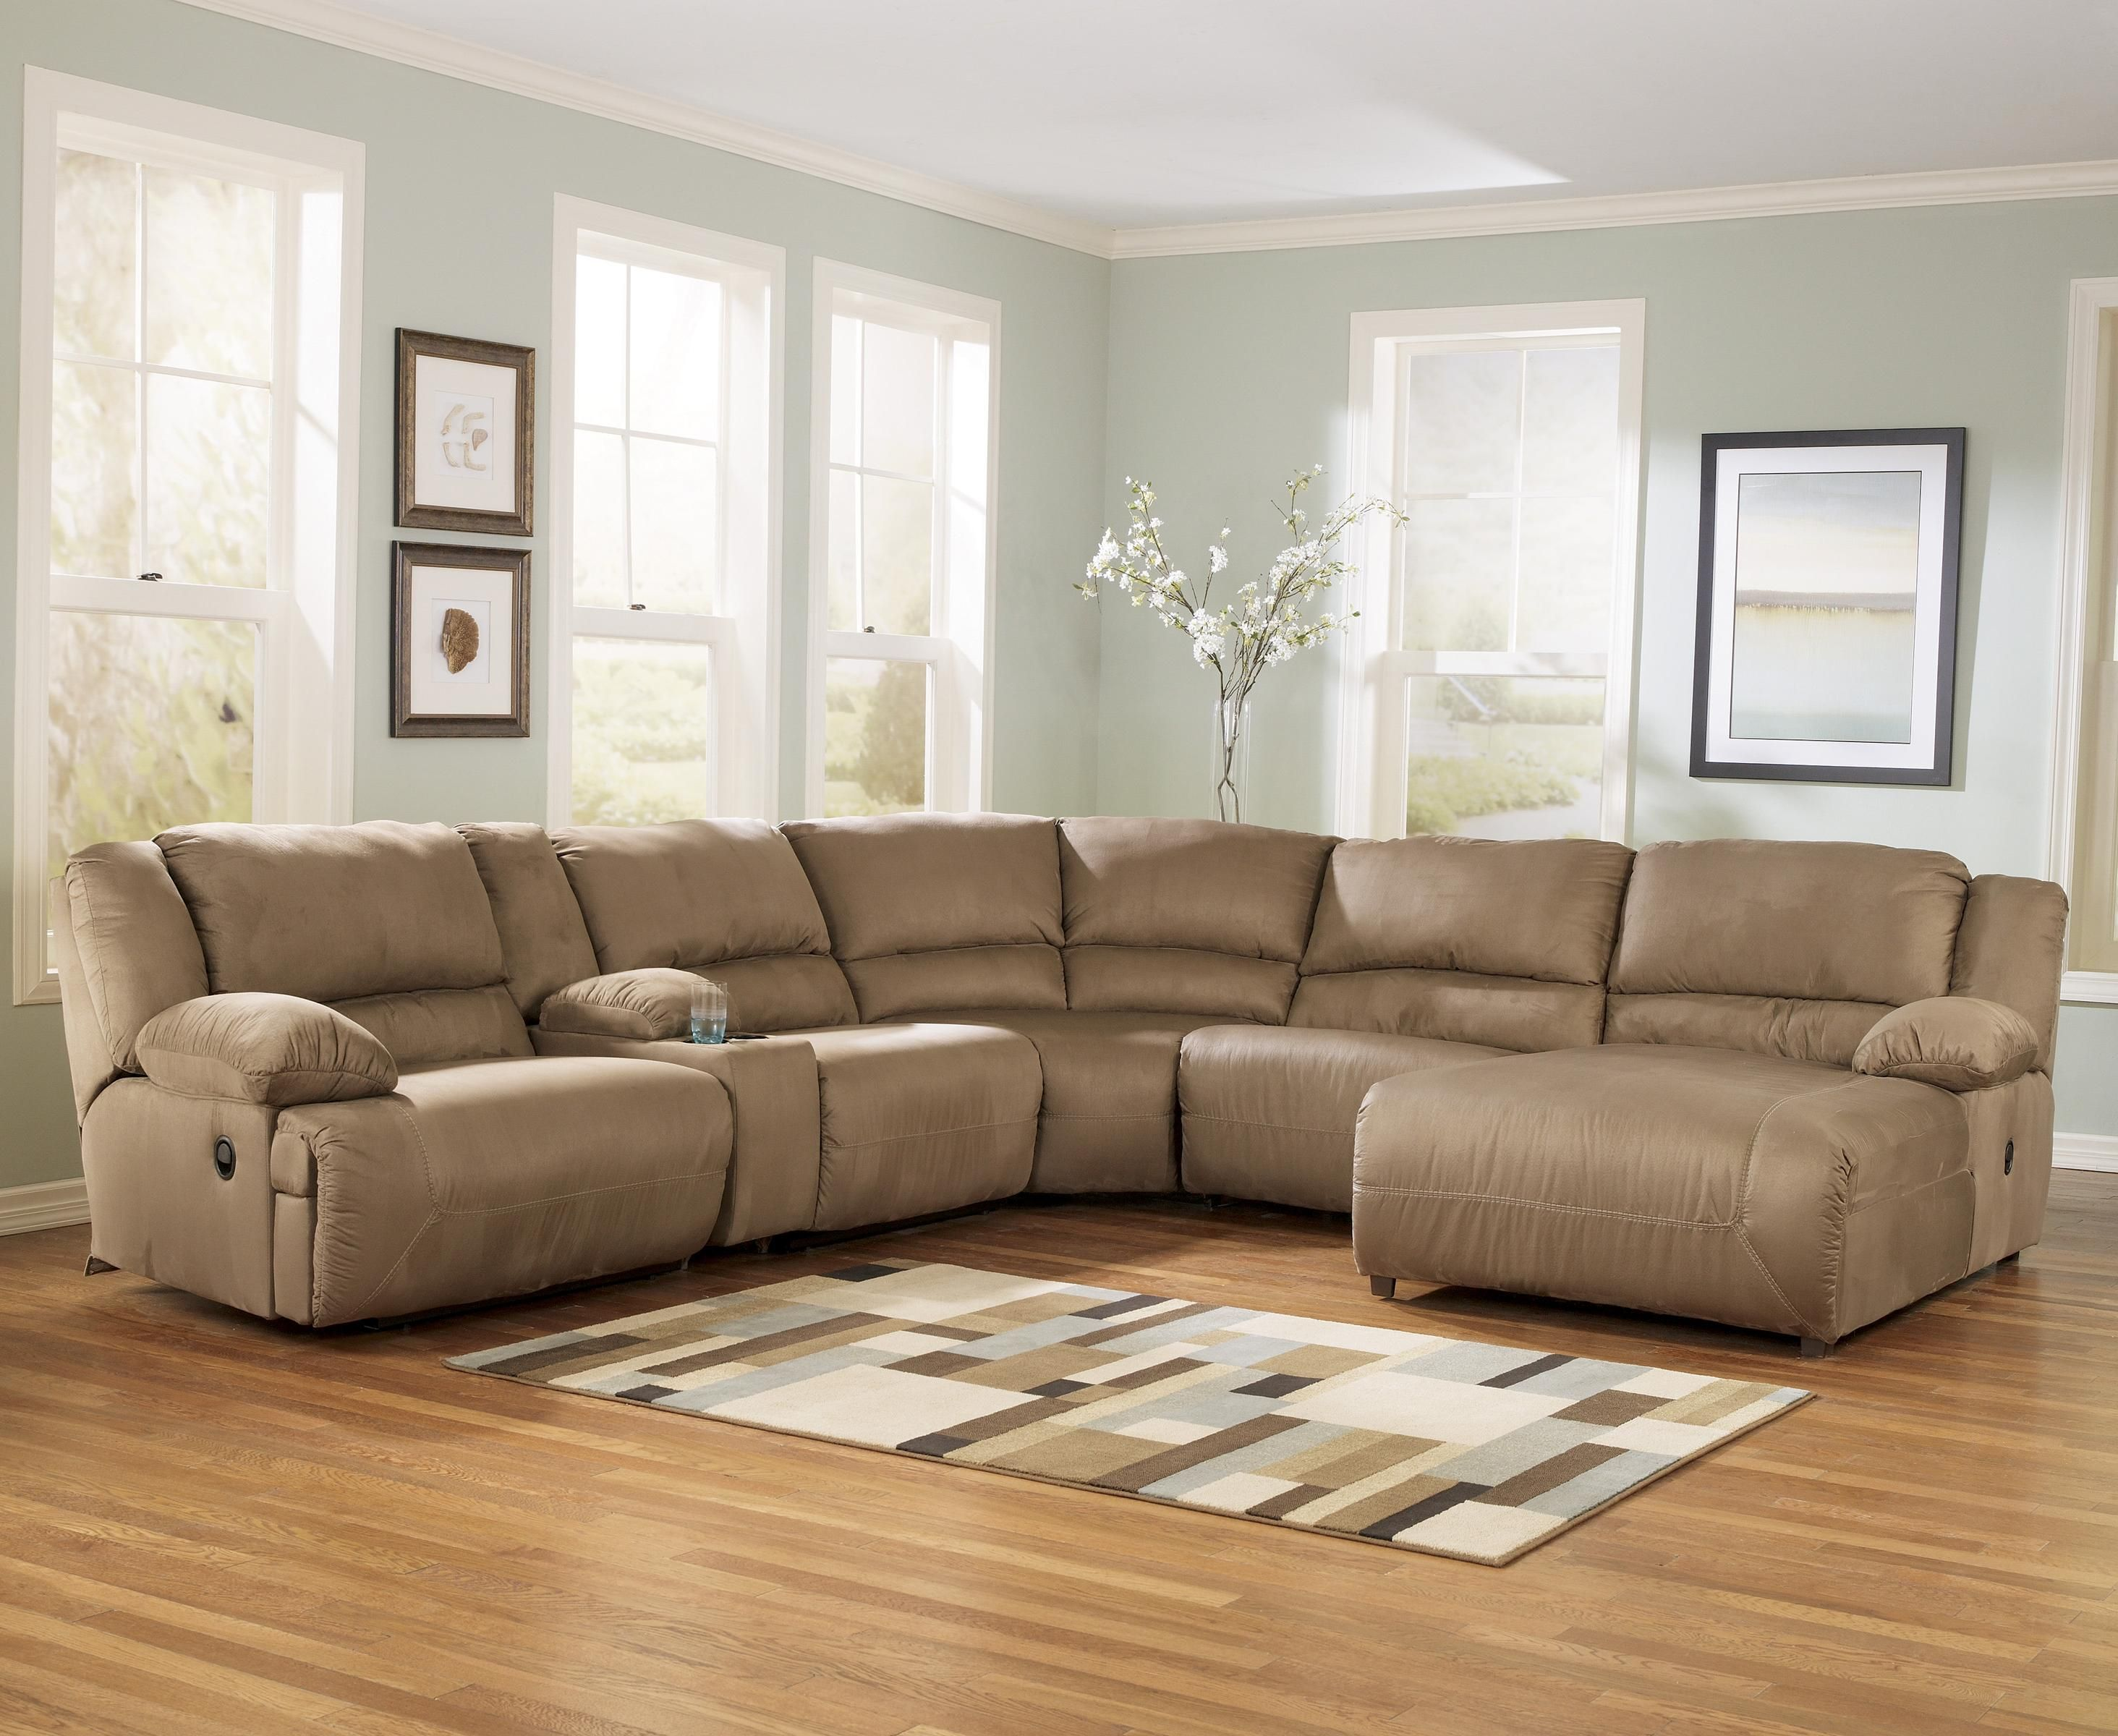 Hogan mocha 6 piece motion sectional with right chaise for Ashley chaise sectional